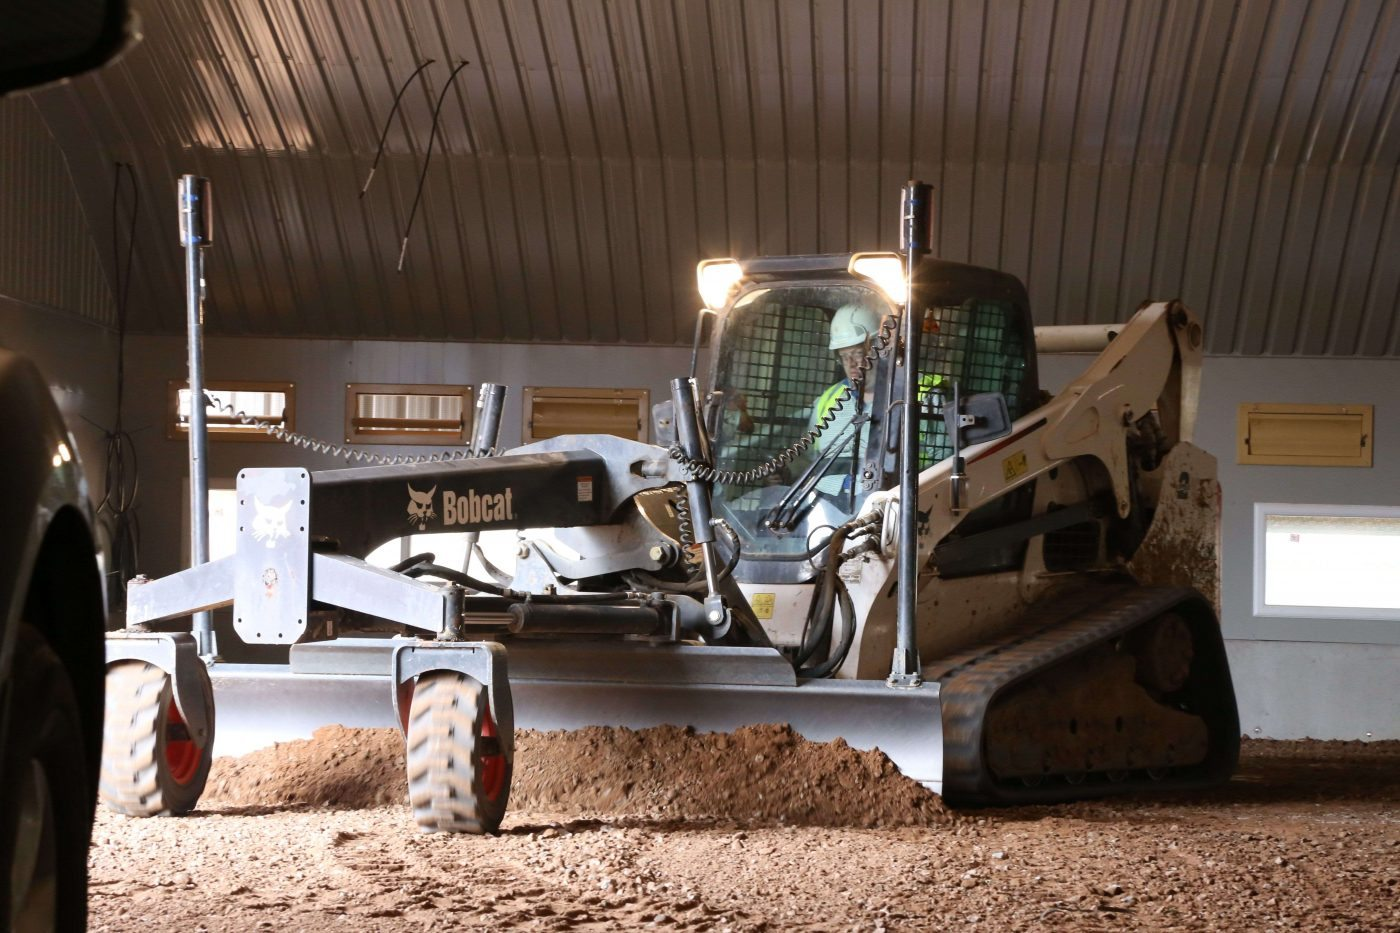 Bobcat in action for concrete flooring division